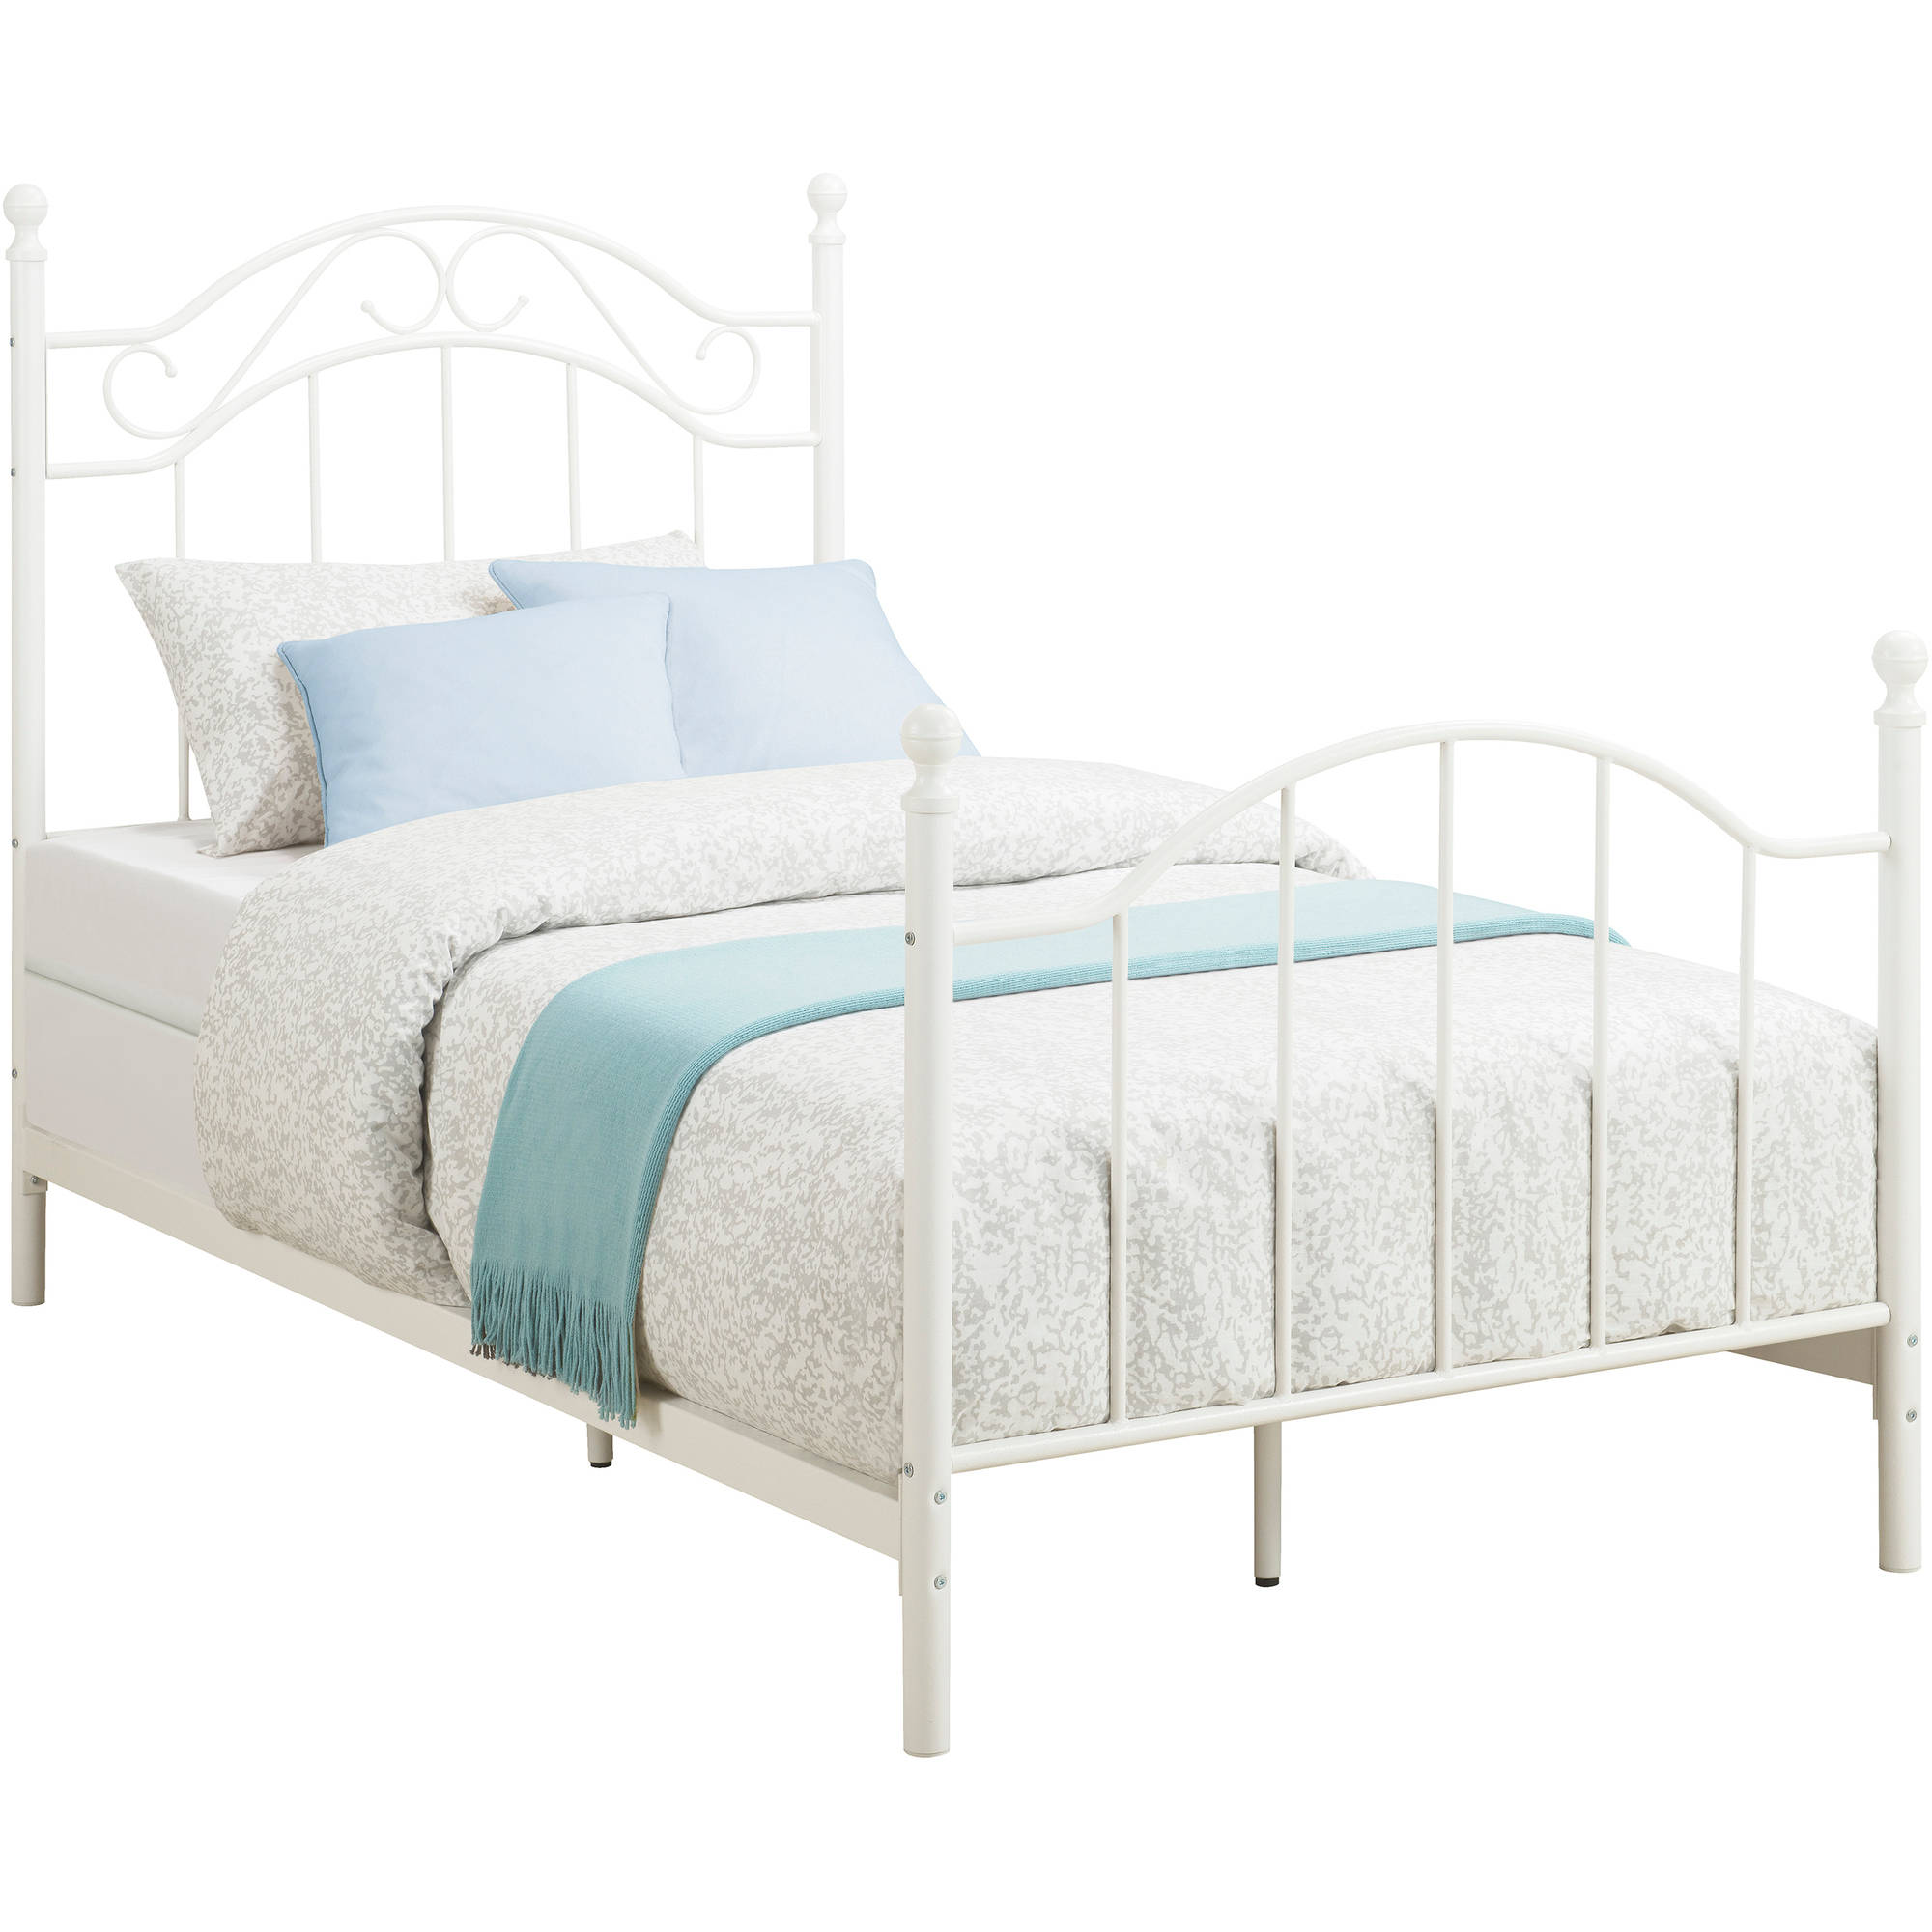 Mainstays Twin Metal Bed Frame - White (WM5278TW) | eBay